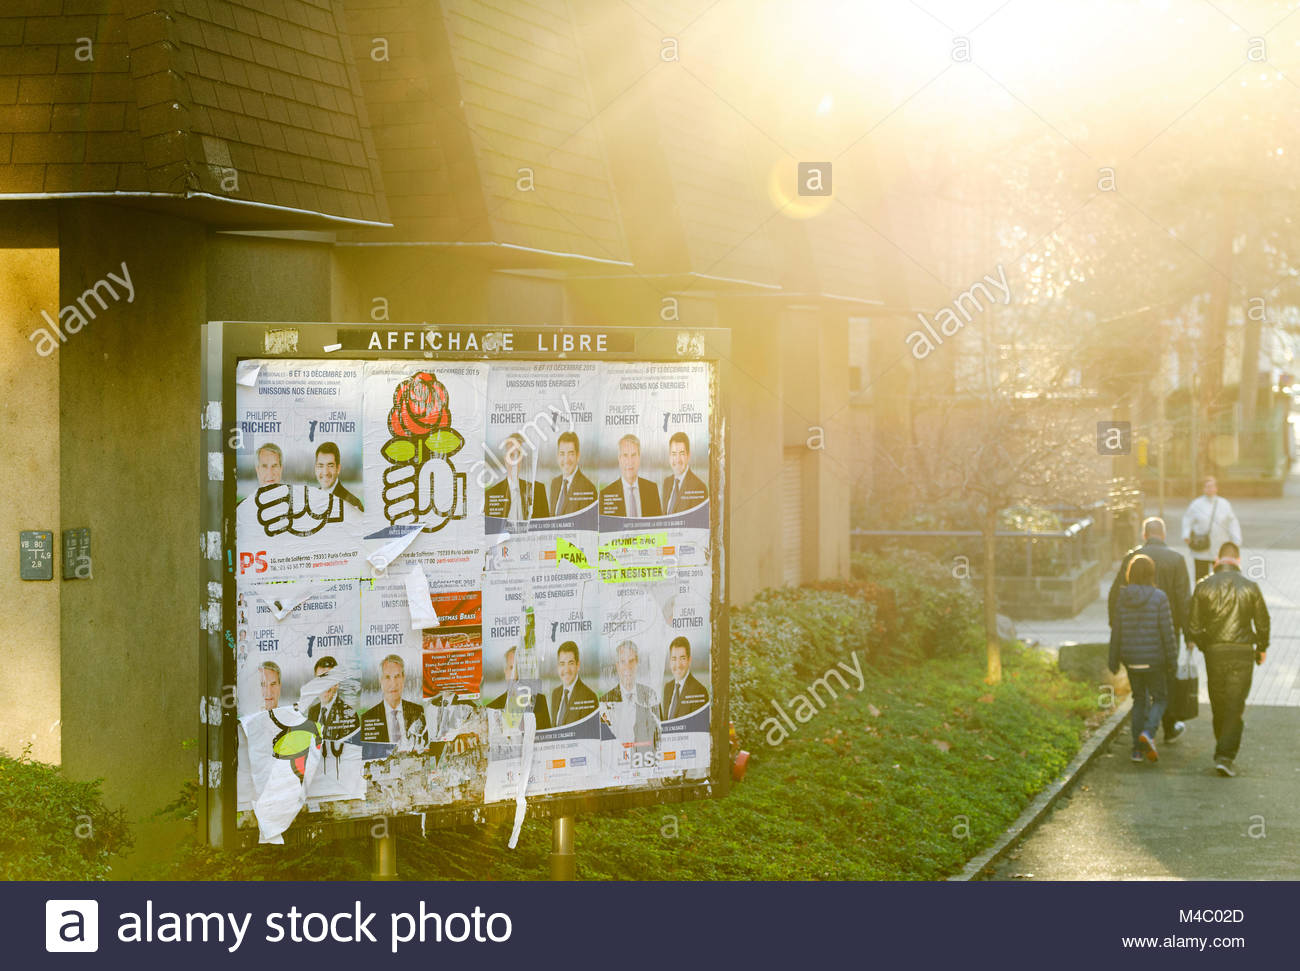 Political advertising on French street with sun flare - Stock Image